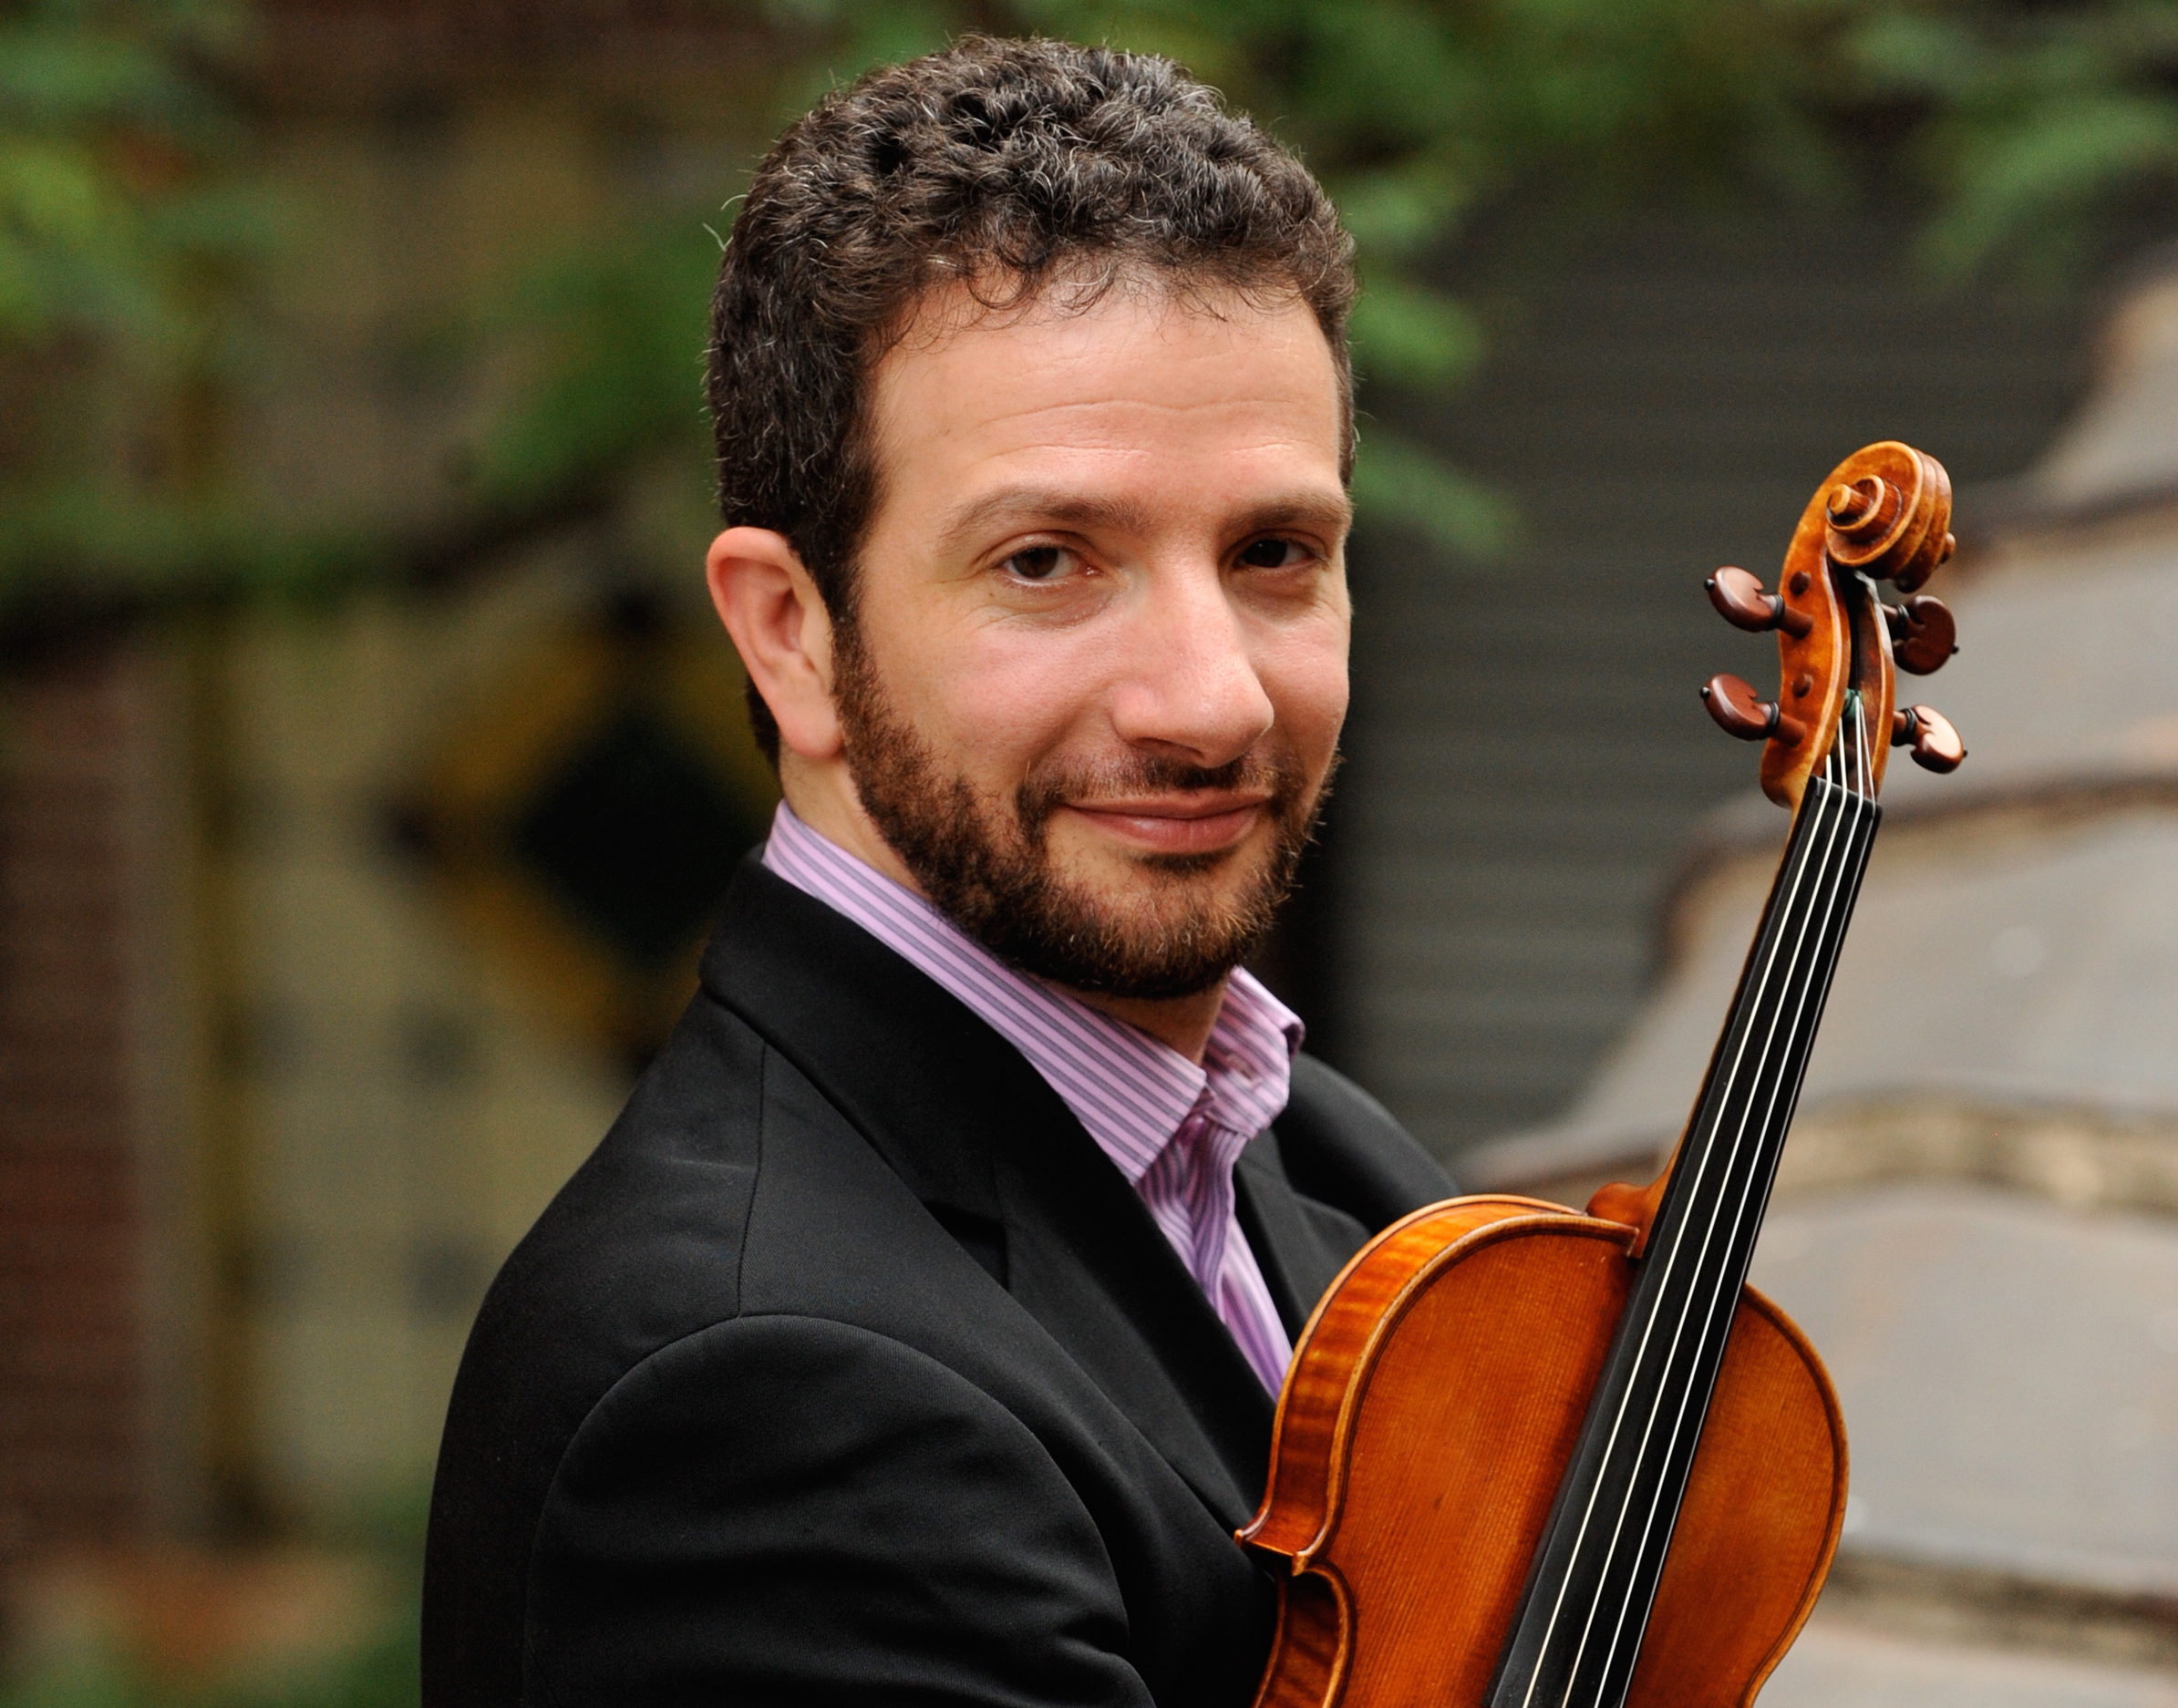 STEVEN COPES  | violin  Concertmaster, Saint Paul Chamber Orchestra; Artist Faculty, Curtis Summerfest